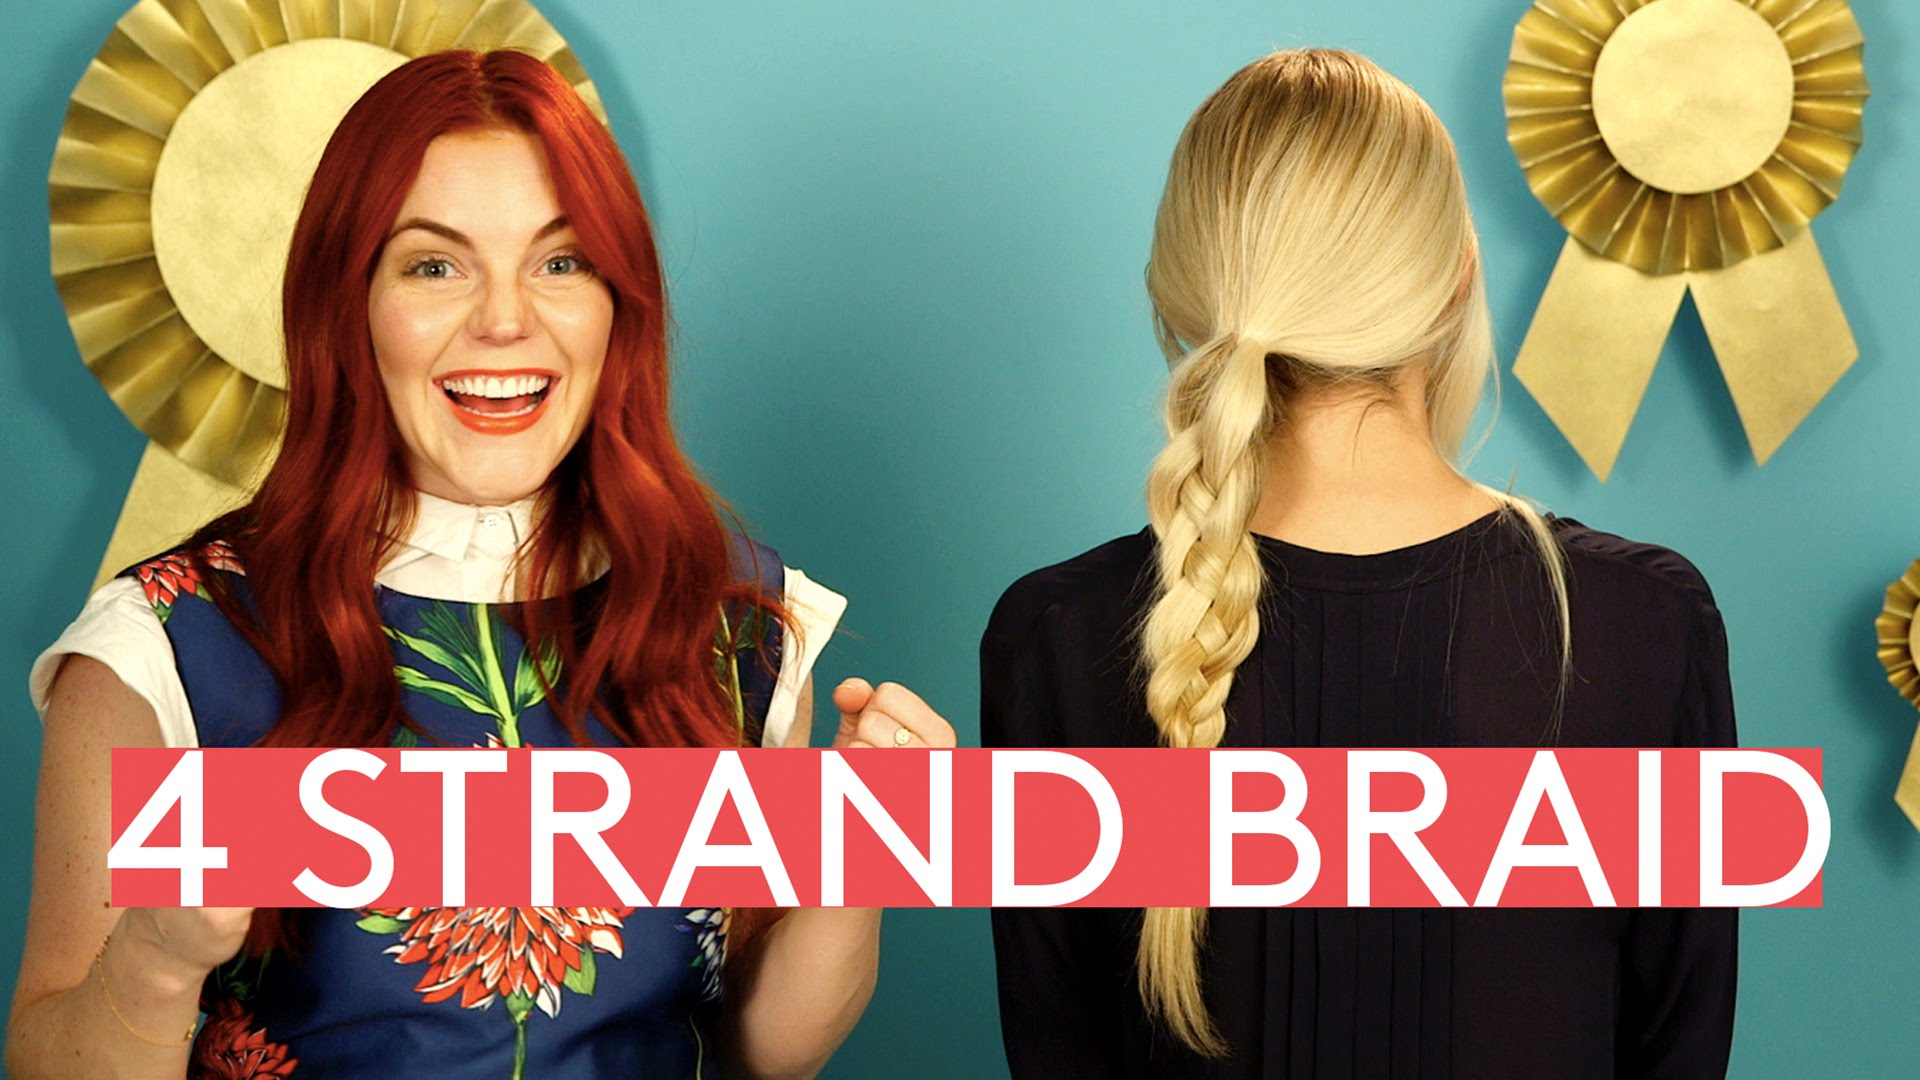 「說難不難:兩分鐘學會綁四股辮!」- Creating the Perfect 4 Strand Braid Using Pinterest